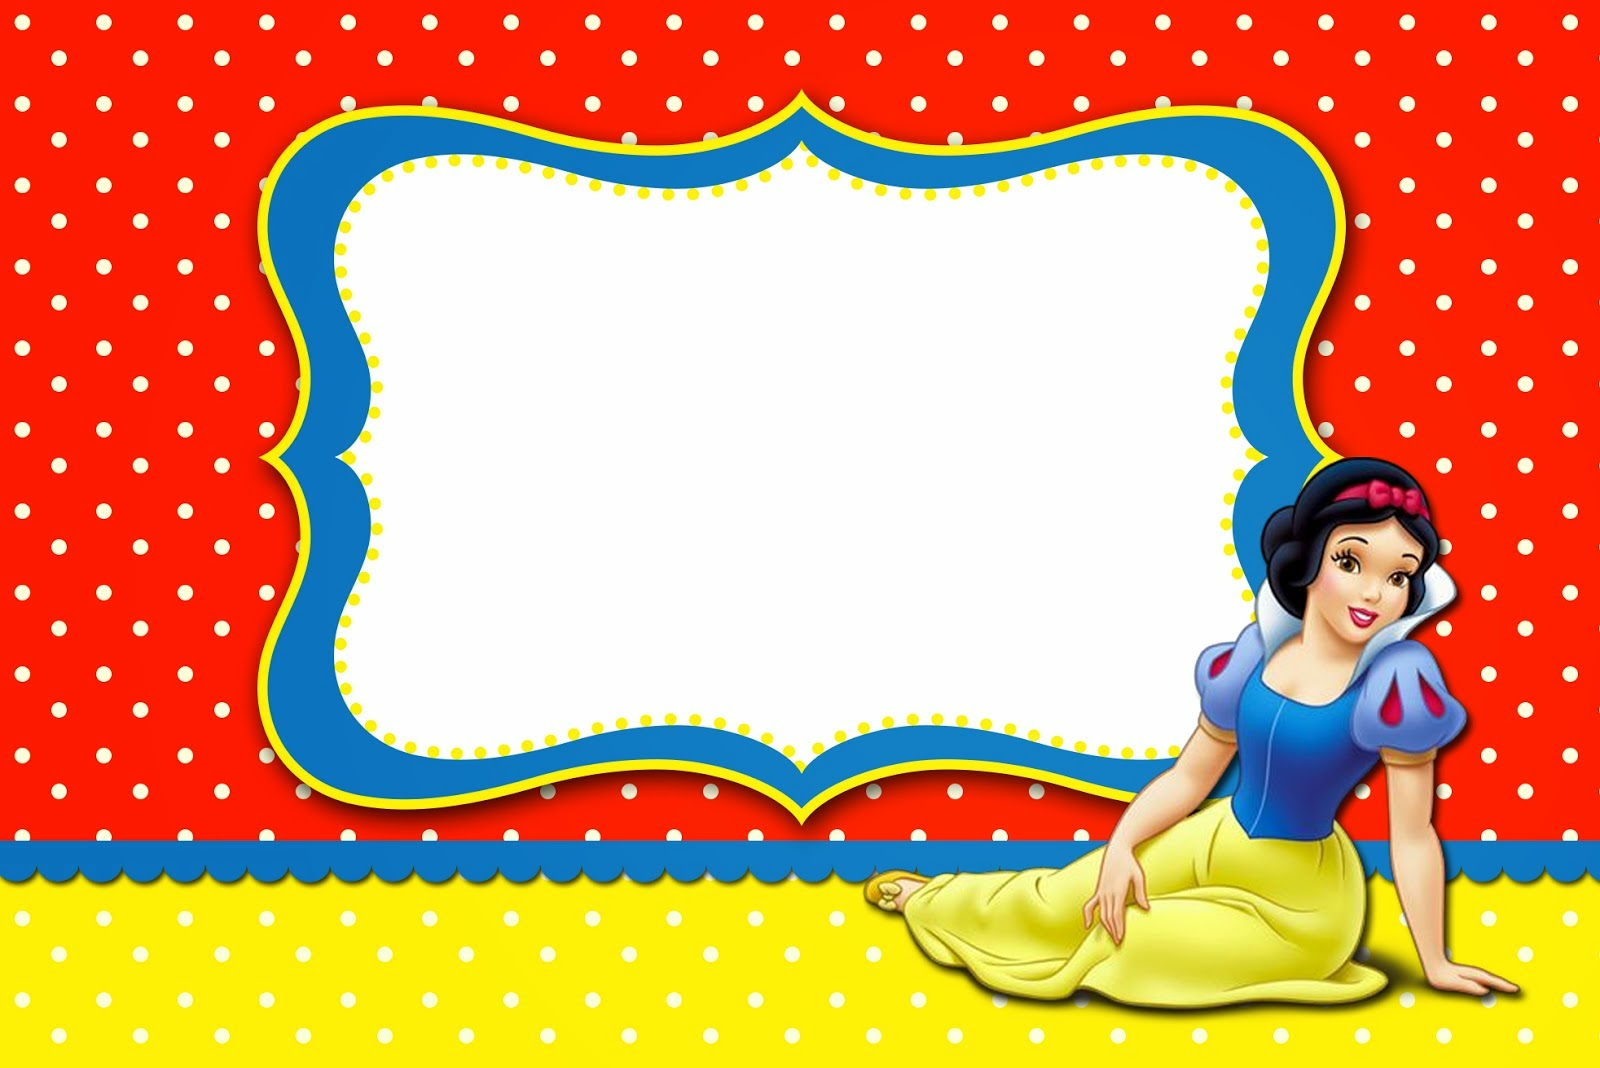 Snow White: Free Printable Invitations, Labels or Cards. - Oh My